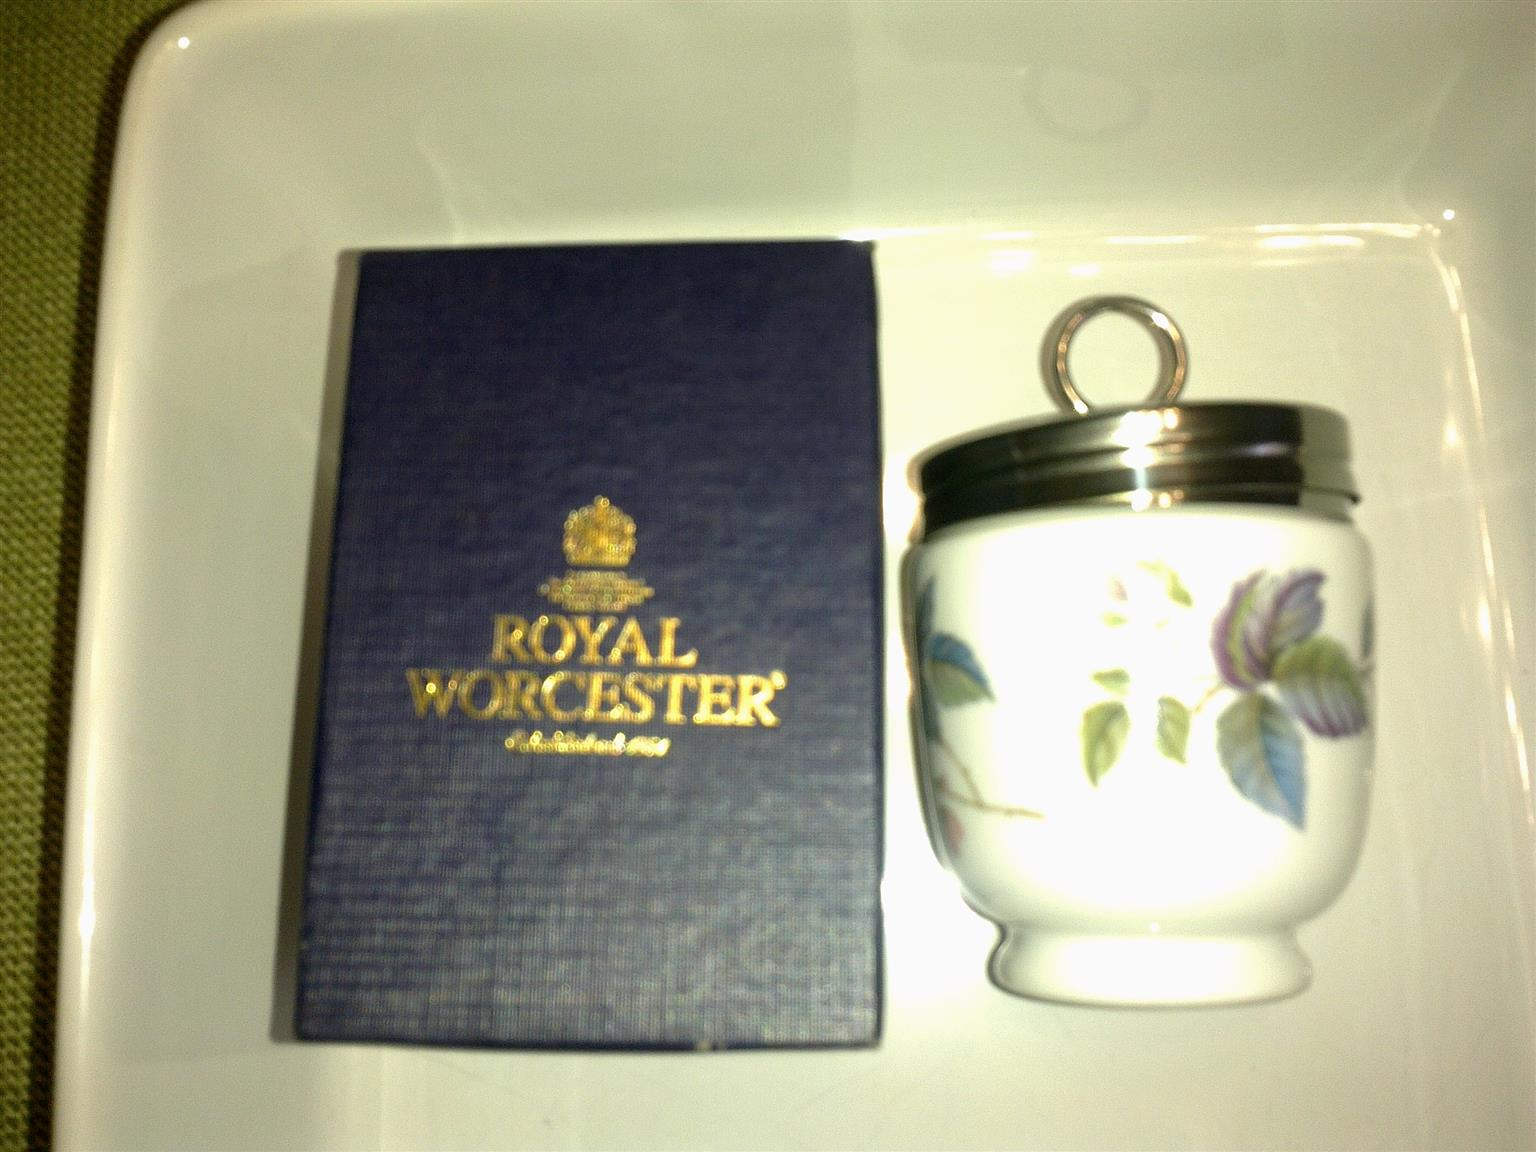 Royal Worcester Double Egg Coddler